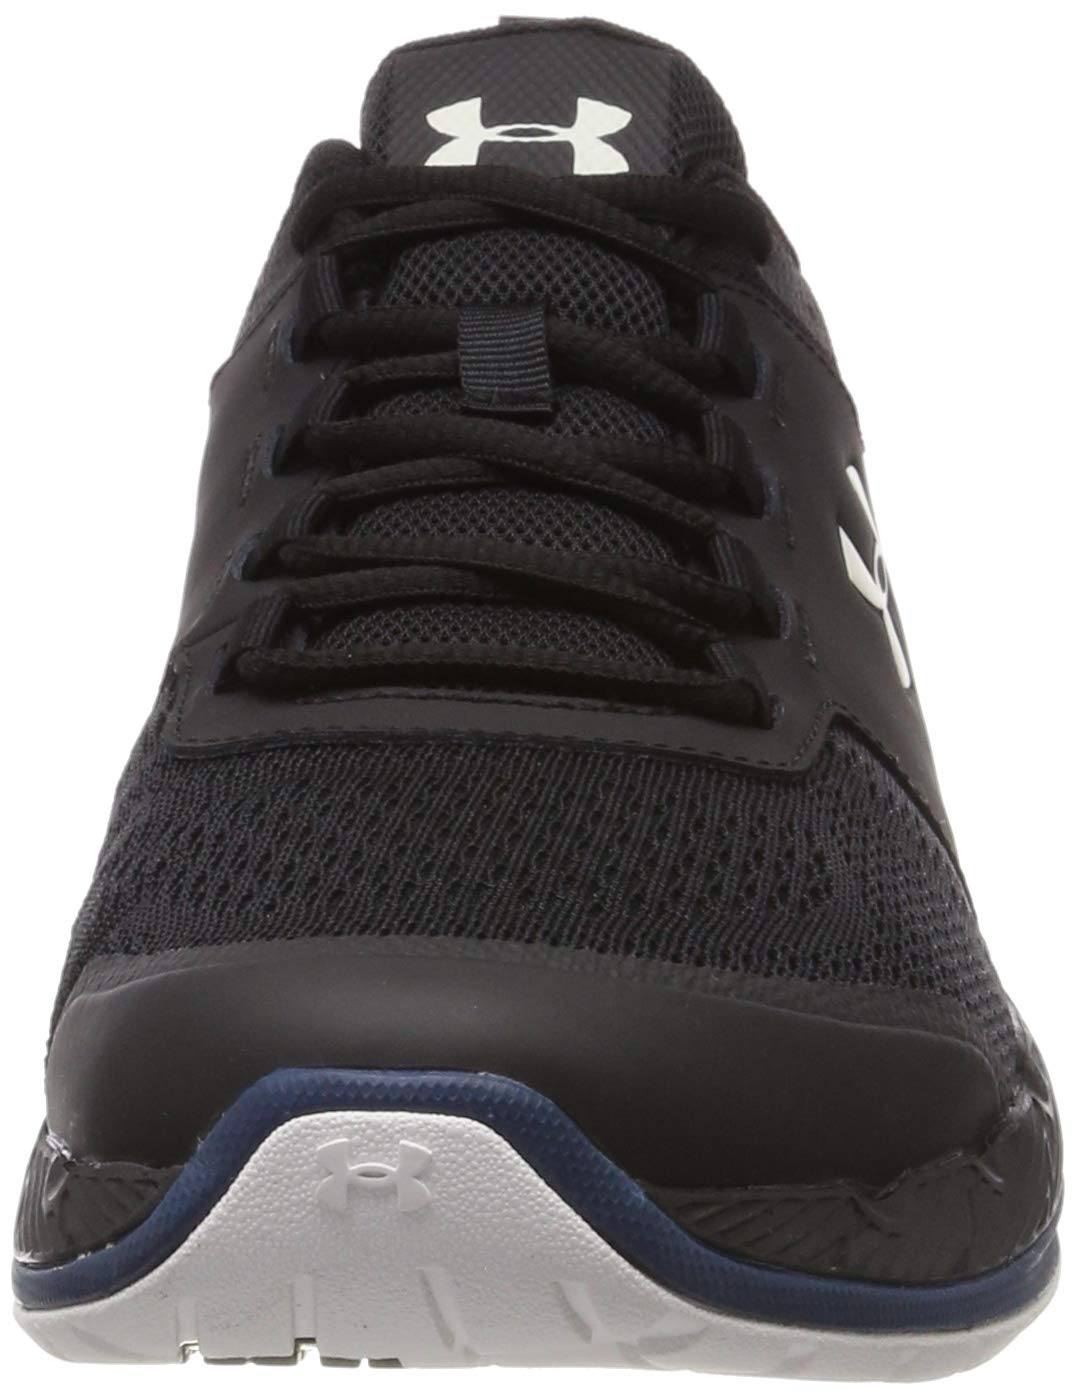 Under Armour Men's Commit TR EX Sneaker, Black (008)/Petrol Blue, 7.5 M US by Under Armour (Image #4)